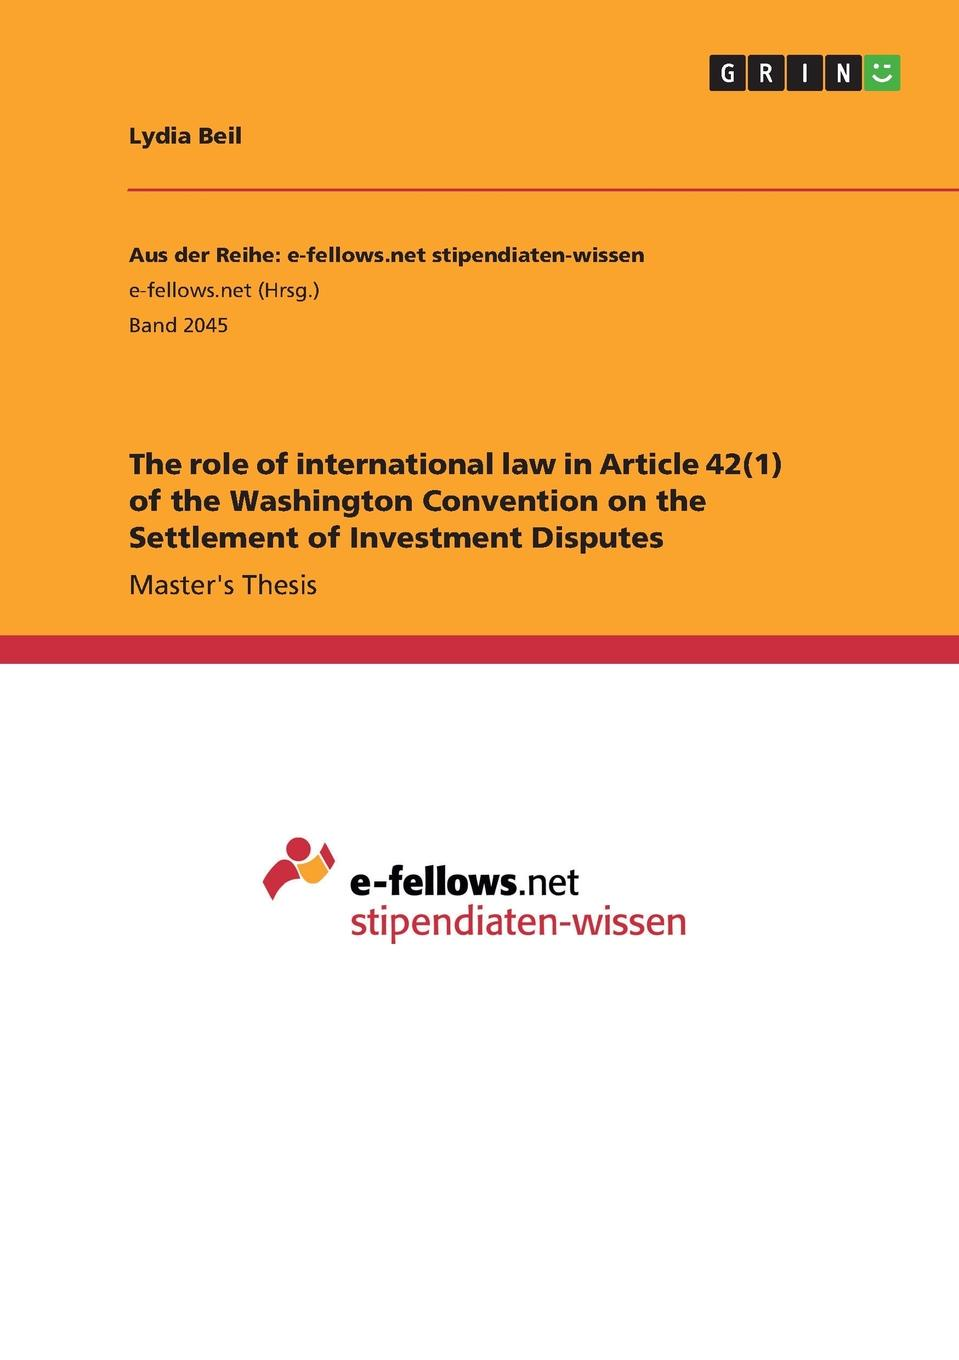 Lydia Beil The role of international law in Article 42(1) of the Washington Convention on the Settlement of Investment Disputes цены